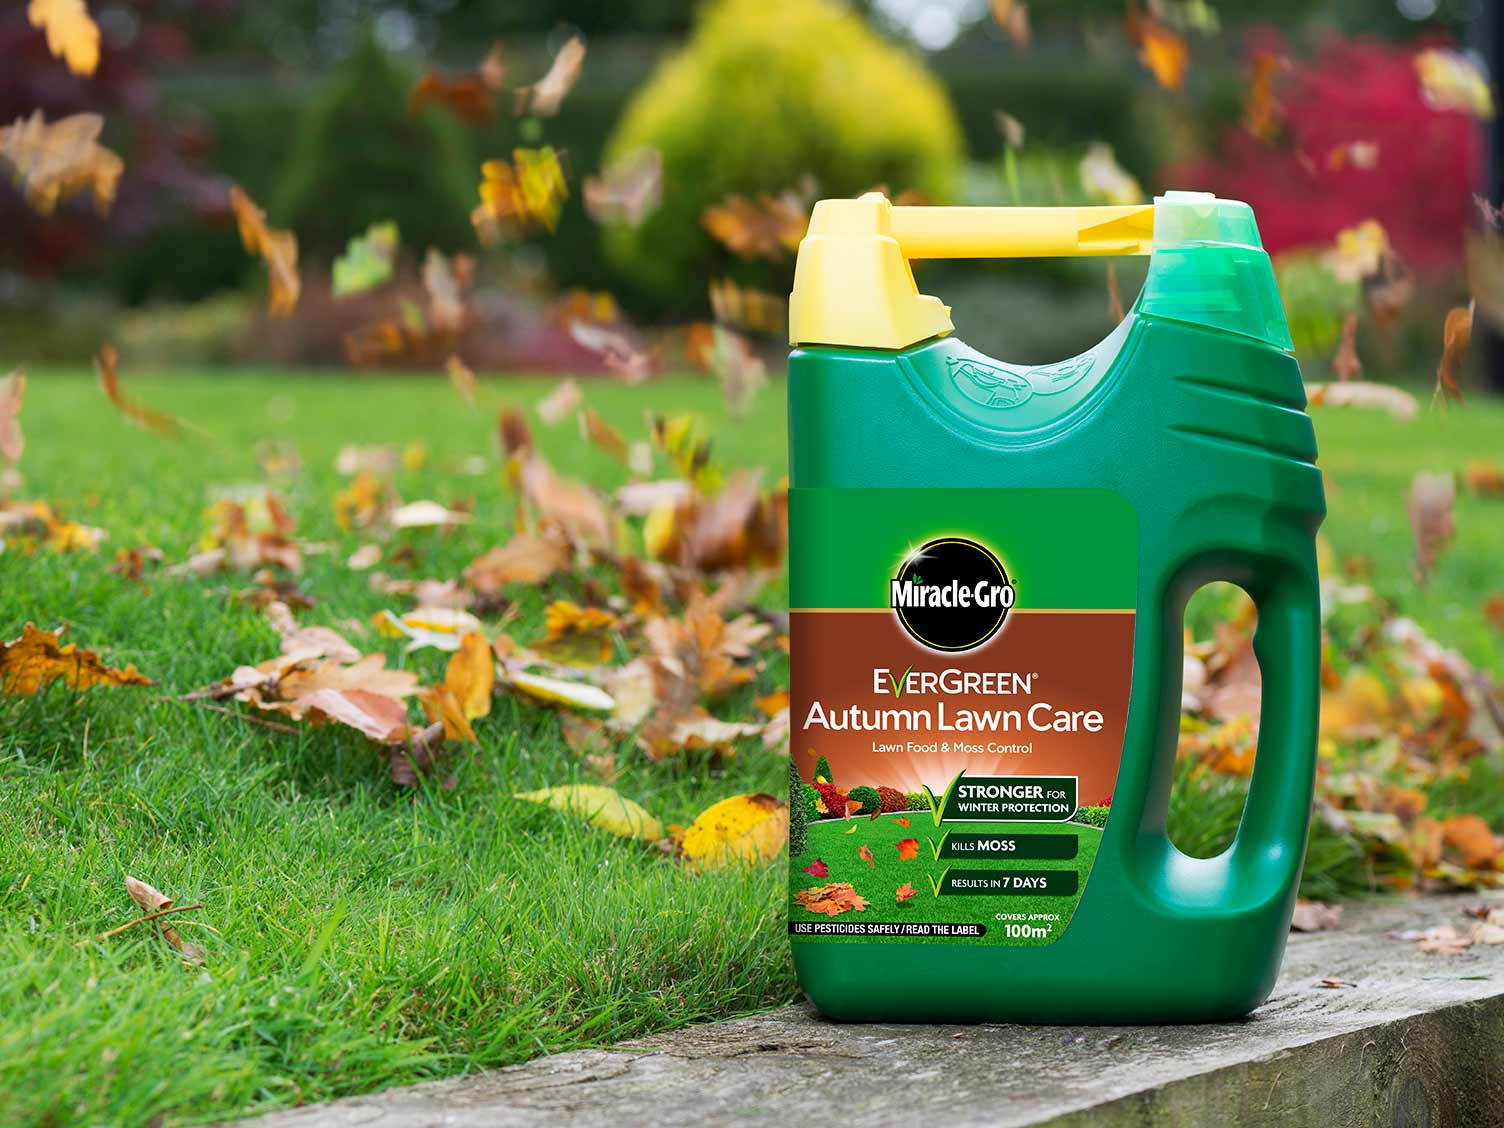 Miracle-Gro EverGreen Autumn Lawn Care spreader pack